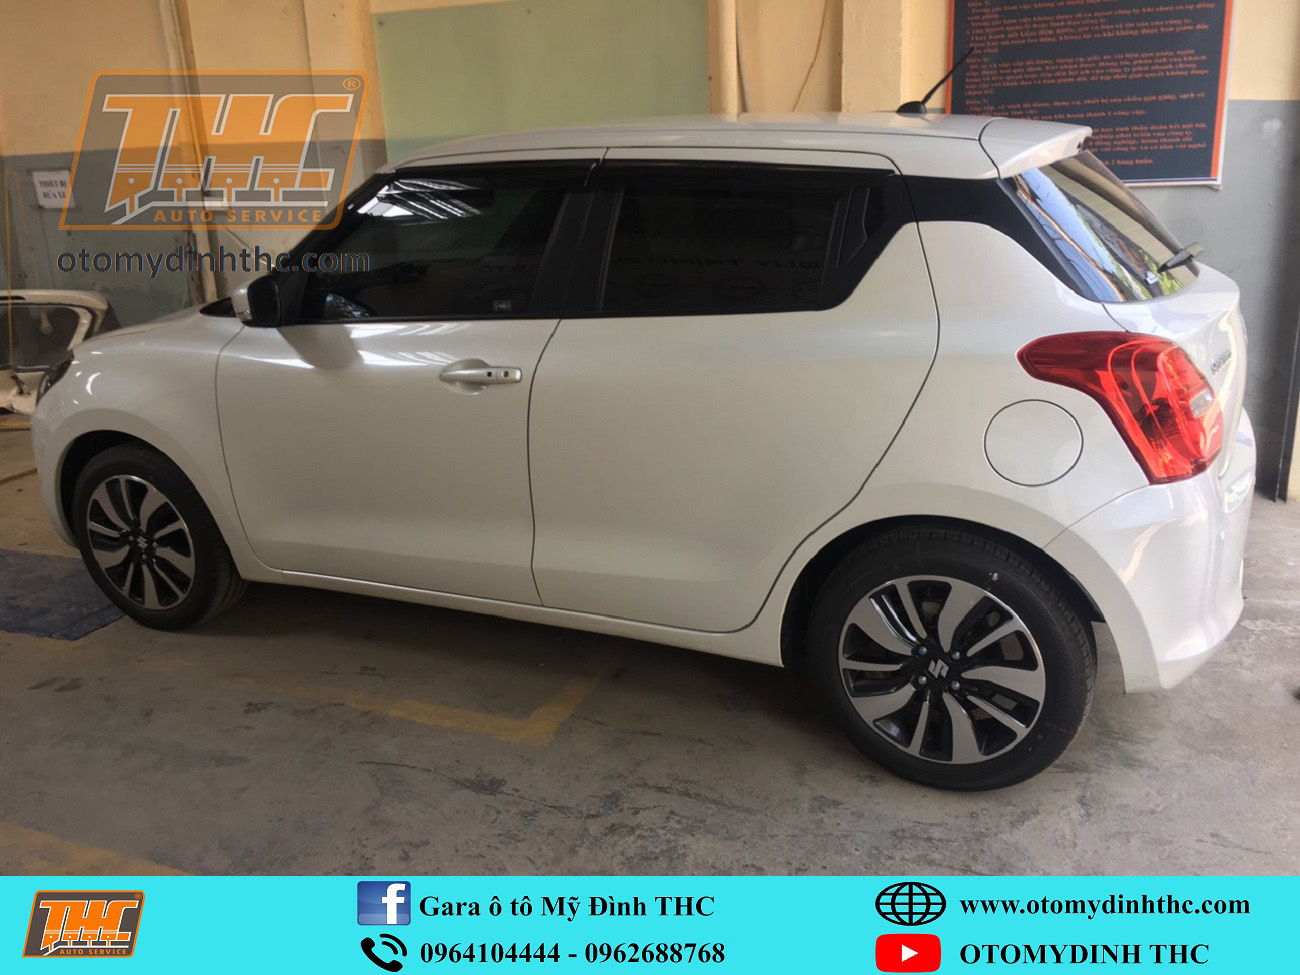 son-doi-mau-suzuki-swift-1